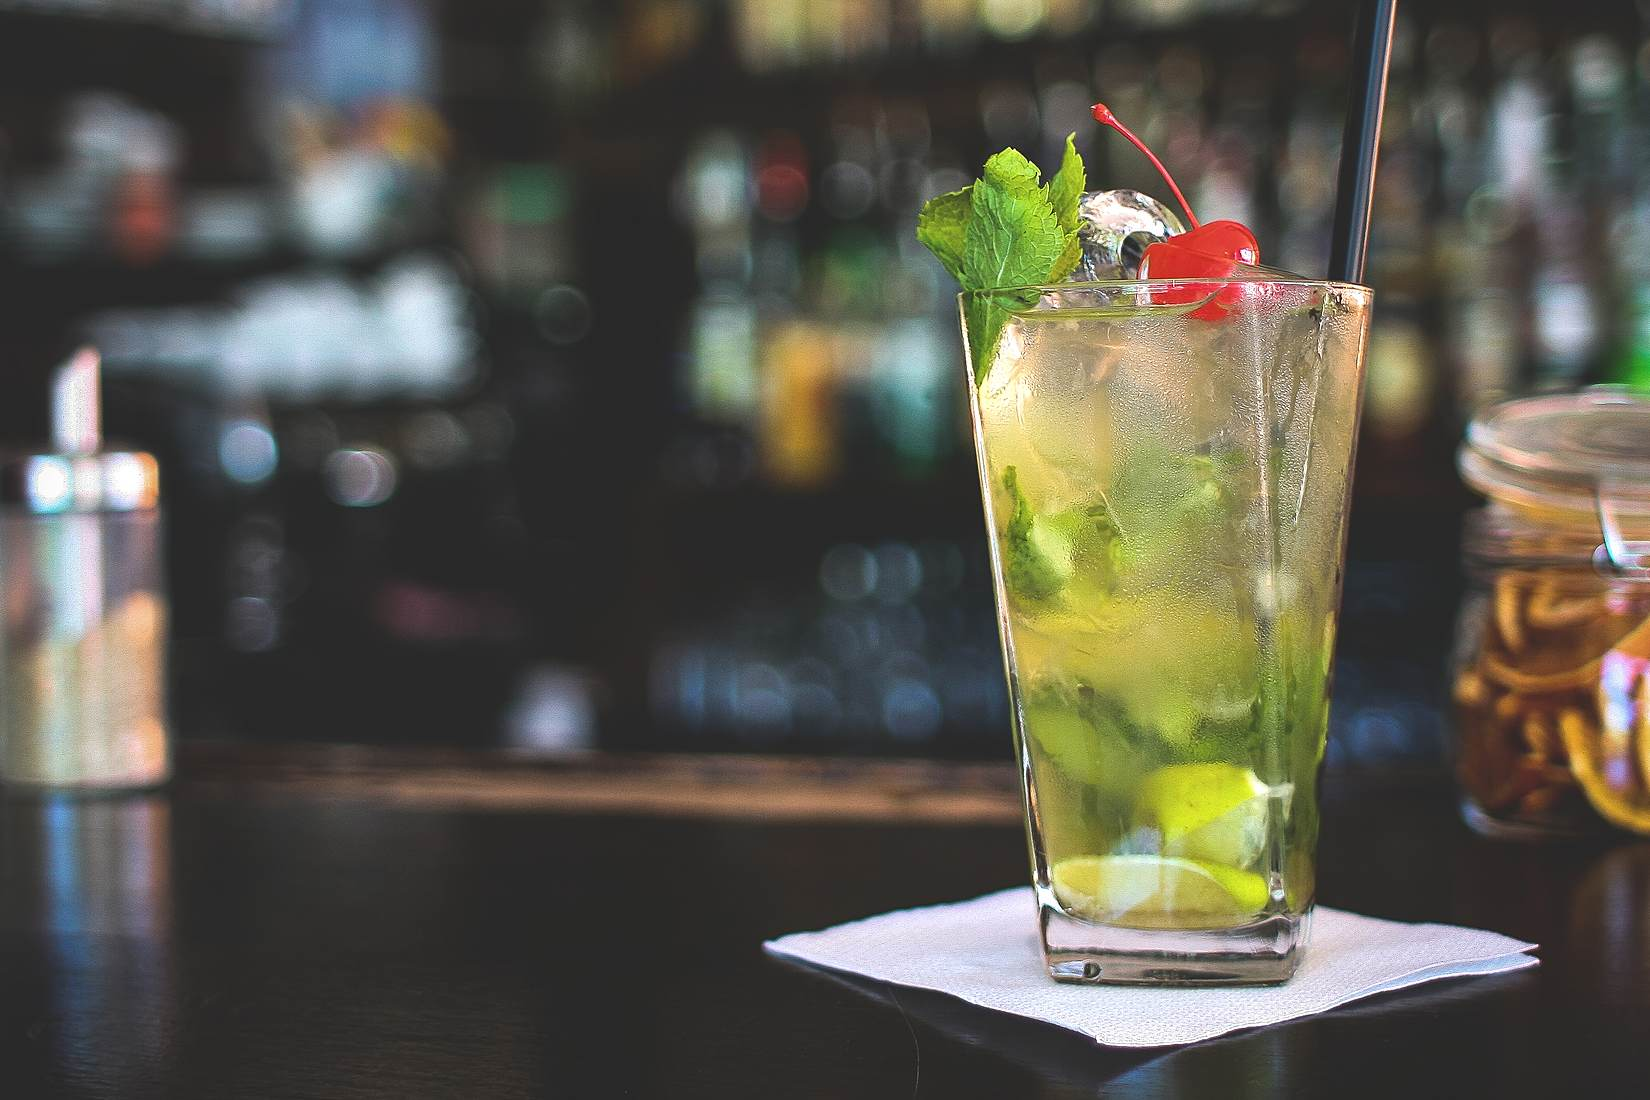 Great Virgin Mojito Drink | © VIKTOR HANACEK/picjumbo